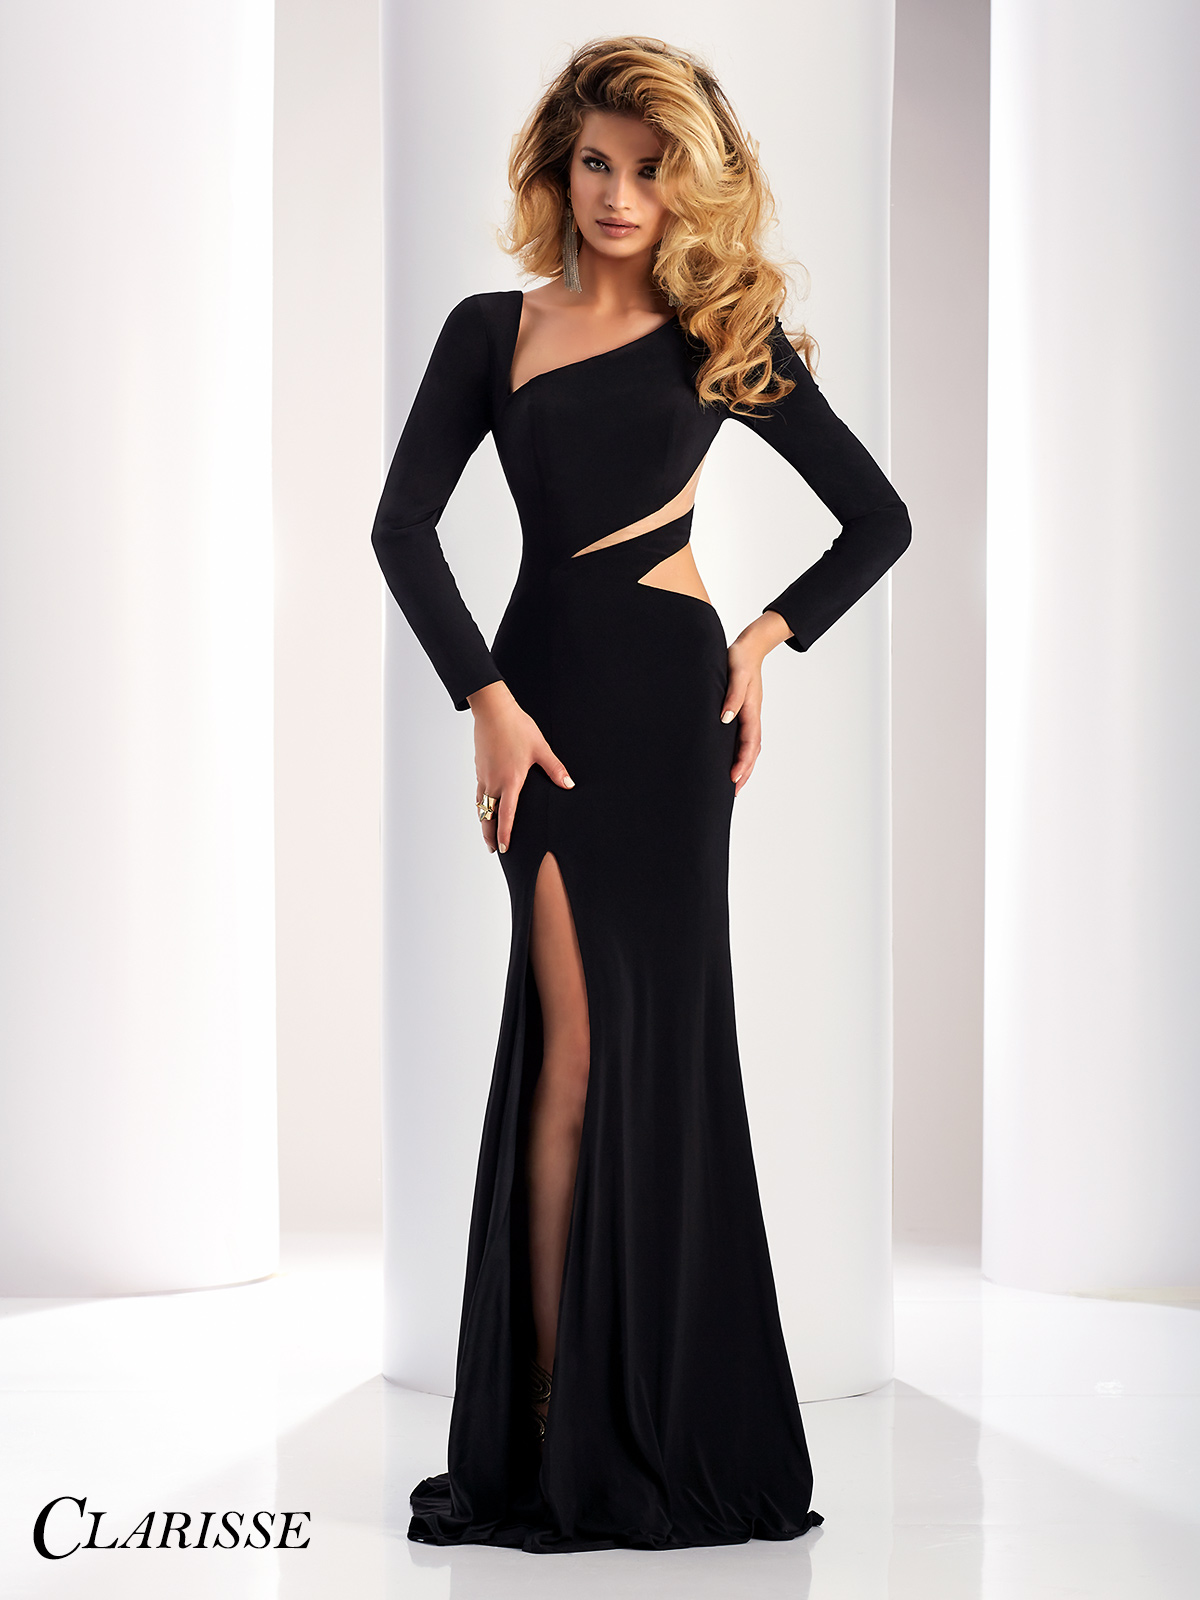 Clarisse Prom Dress 4859 | Promgirl.net